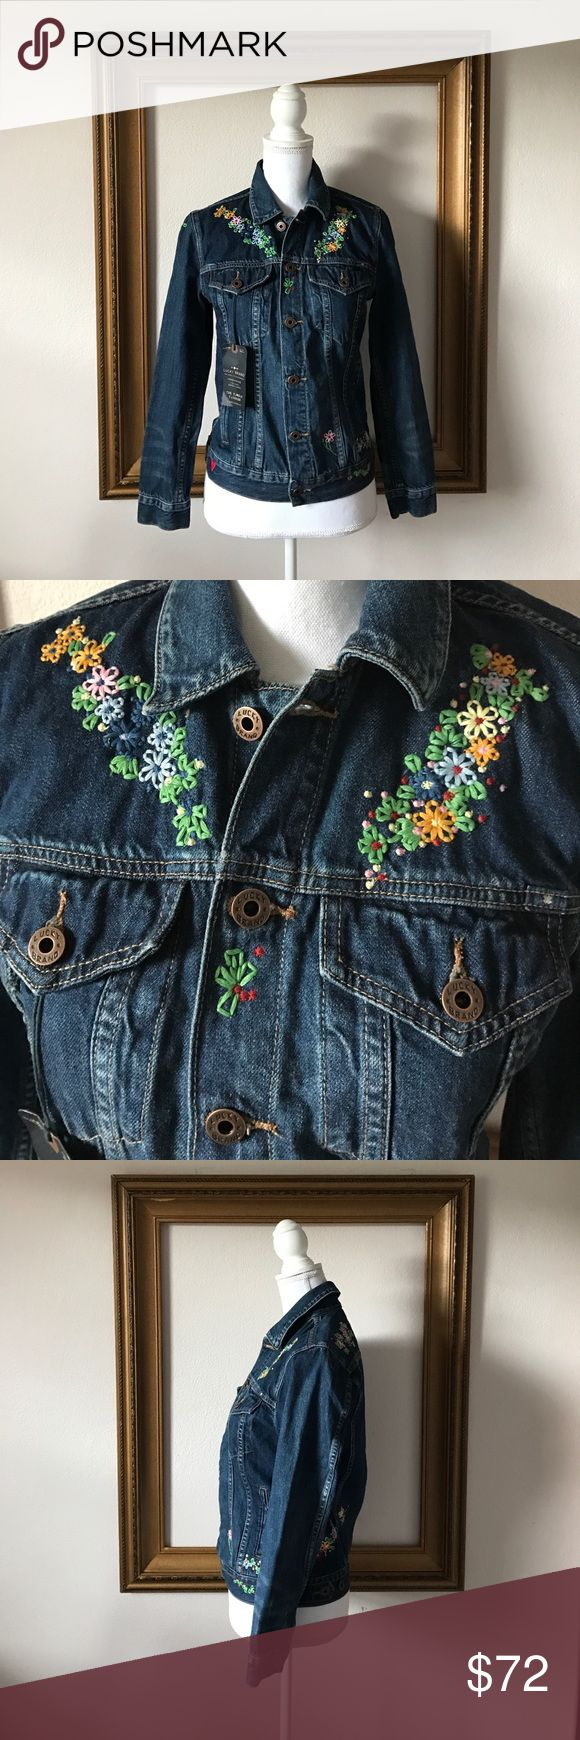 Lucky The Tomboy Trucker embroidered denim jacket NWT. So darling! 17.5 inches armpit to armpit. 22 inches shoulder to bottom of jacket. 17 inches armpit to end of sleeve. Lucky Brand Jackets & Coats Jean Jackets